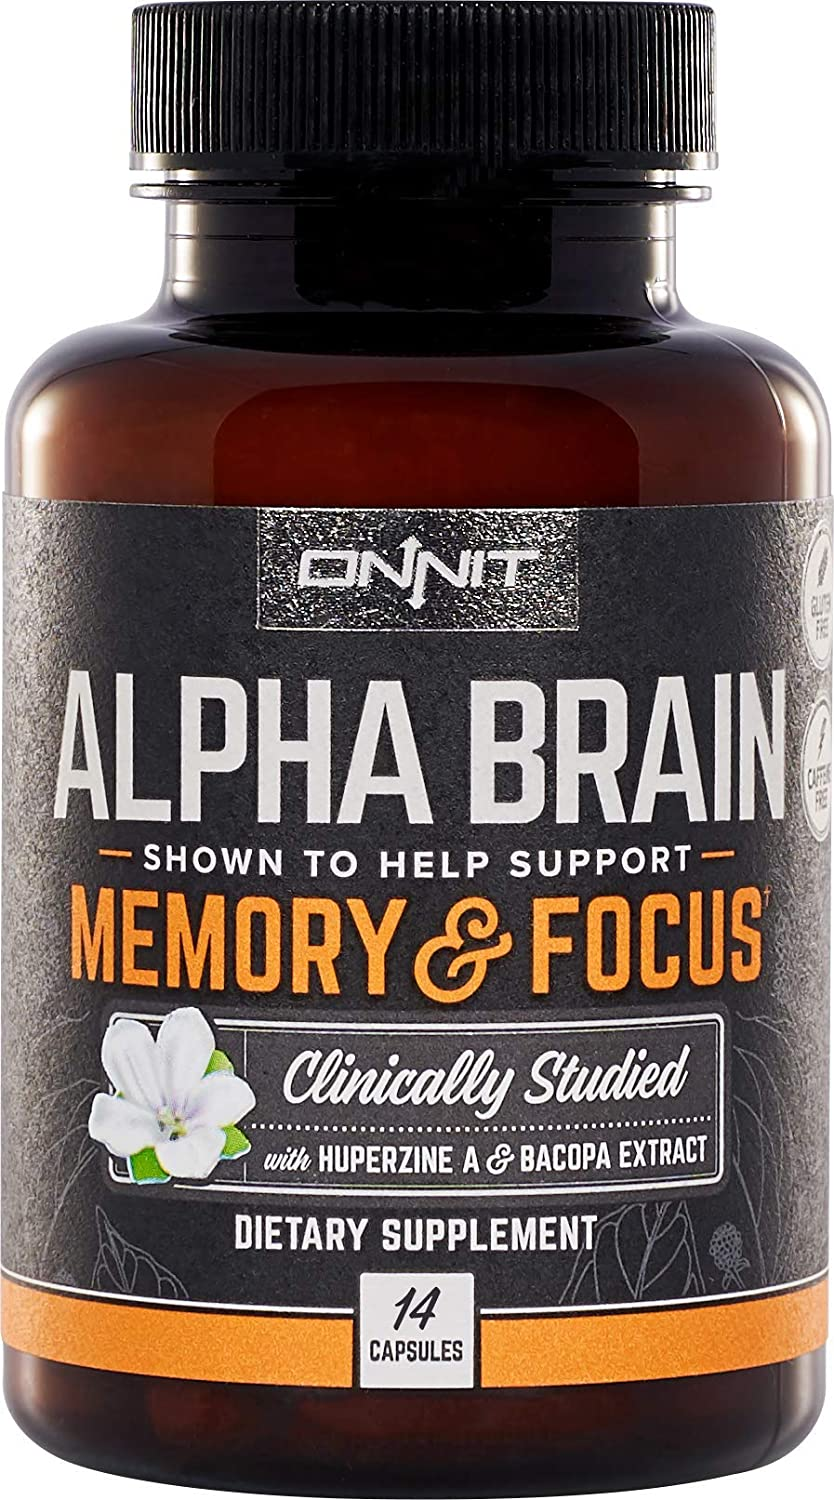 2bc1f1ea Amazon.com: Onnit Alpha Brain (14ct): Nootropic Brain Booster Supplement  for Memory, Focus, and Mental Clarity | with Bacopa, AC11, Huperzine A,  L-Tyrosine, ...